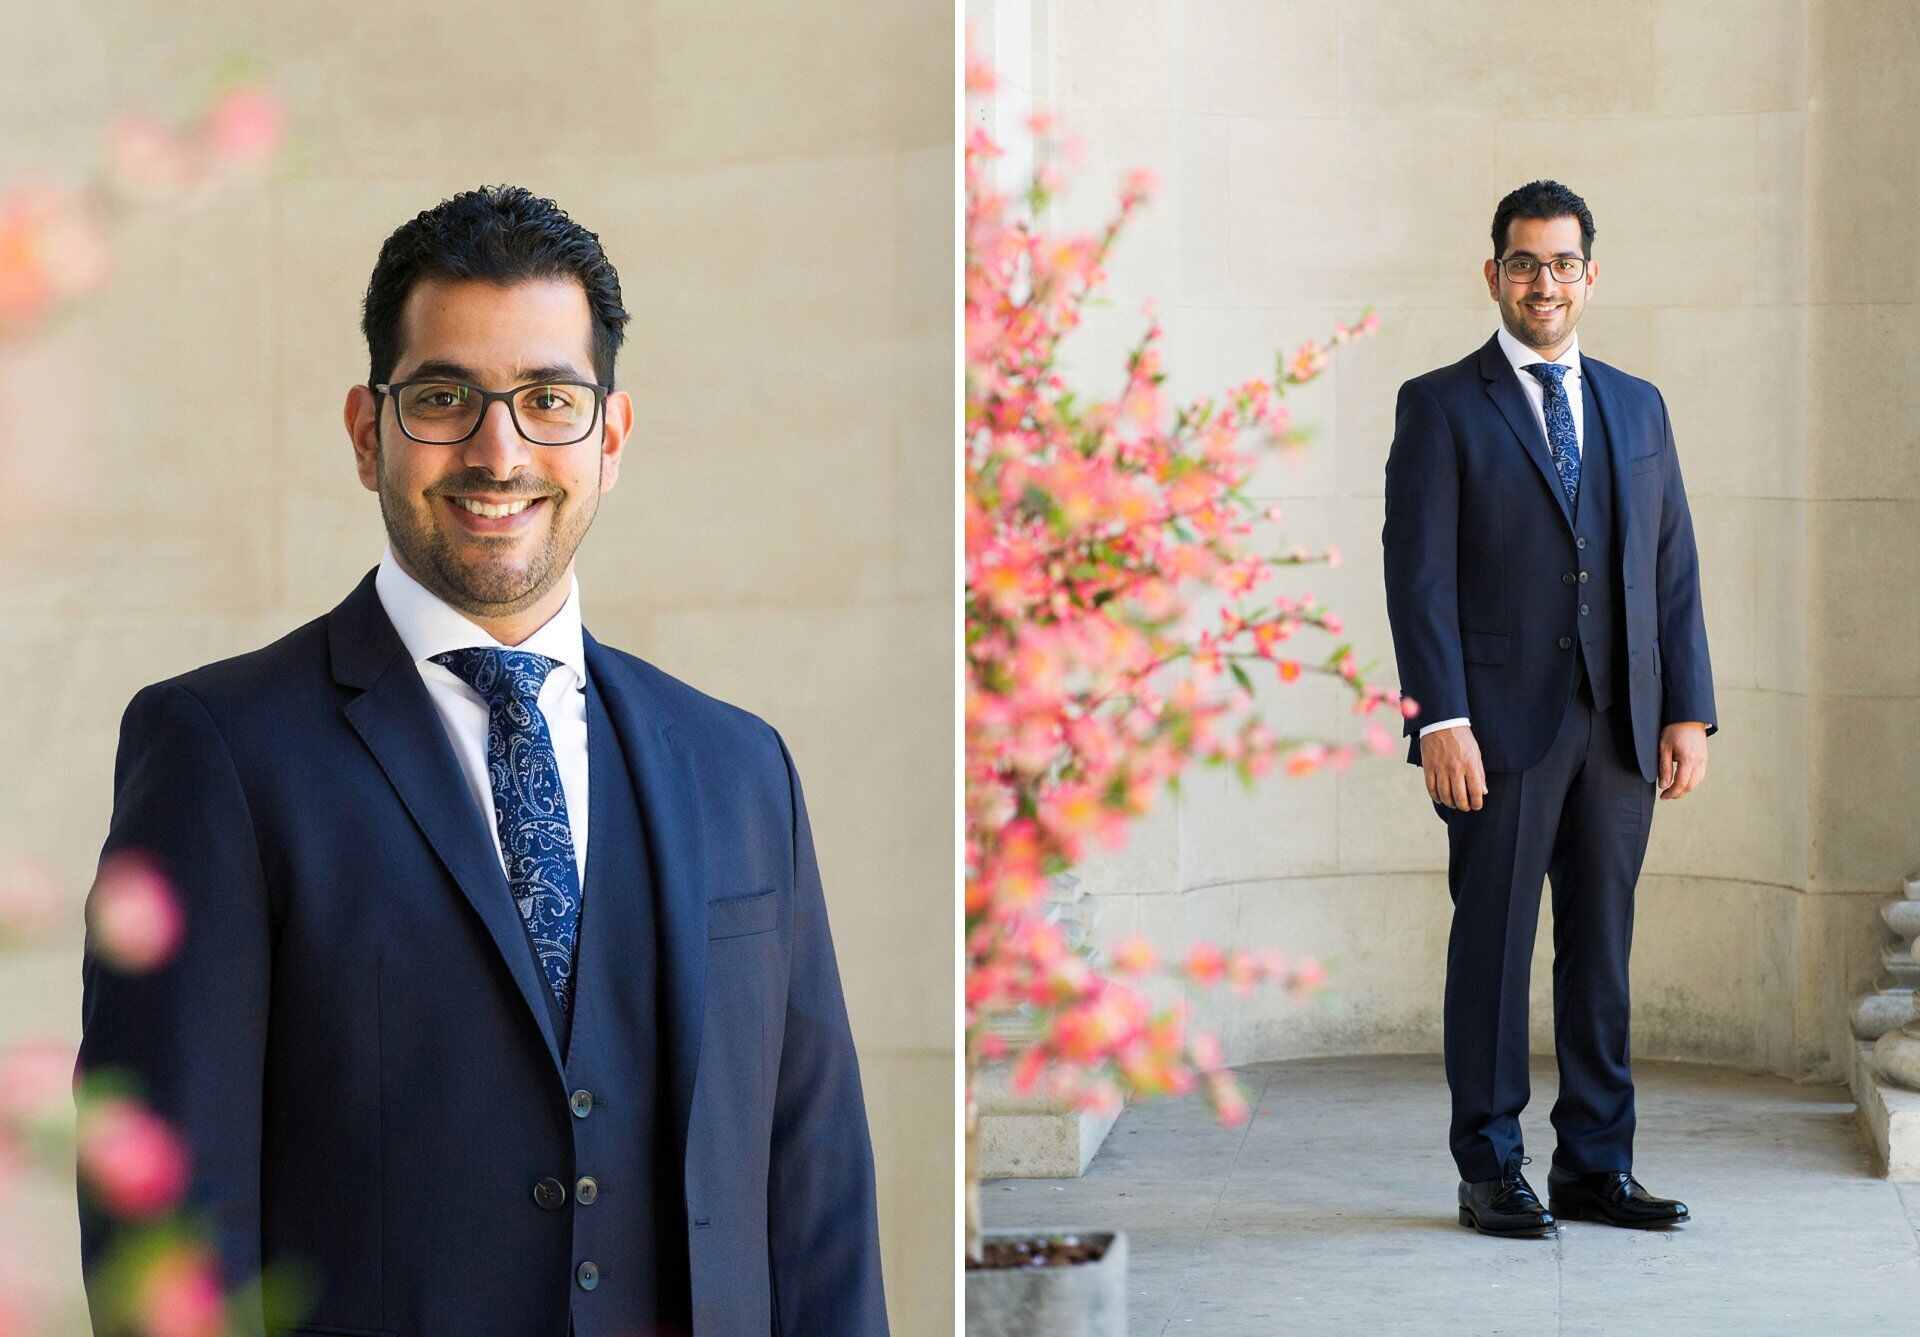 dubai groom in navy suit old marylebone town hall wedding photographer by a short coverage specialist